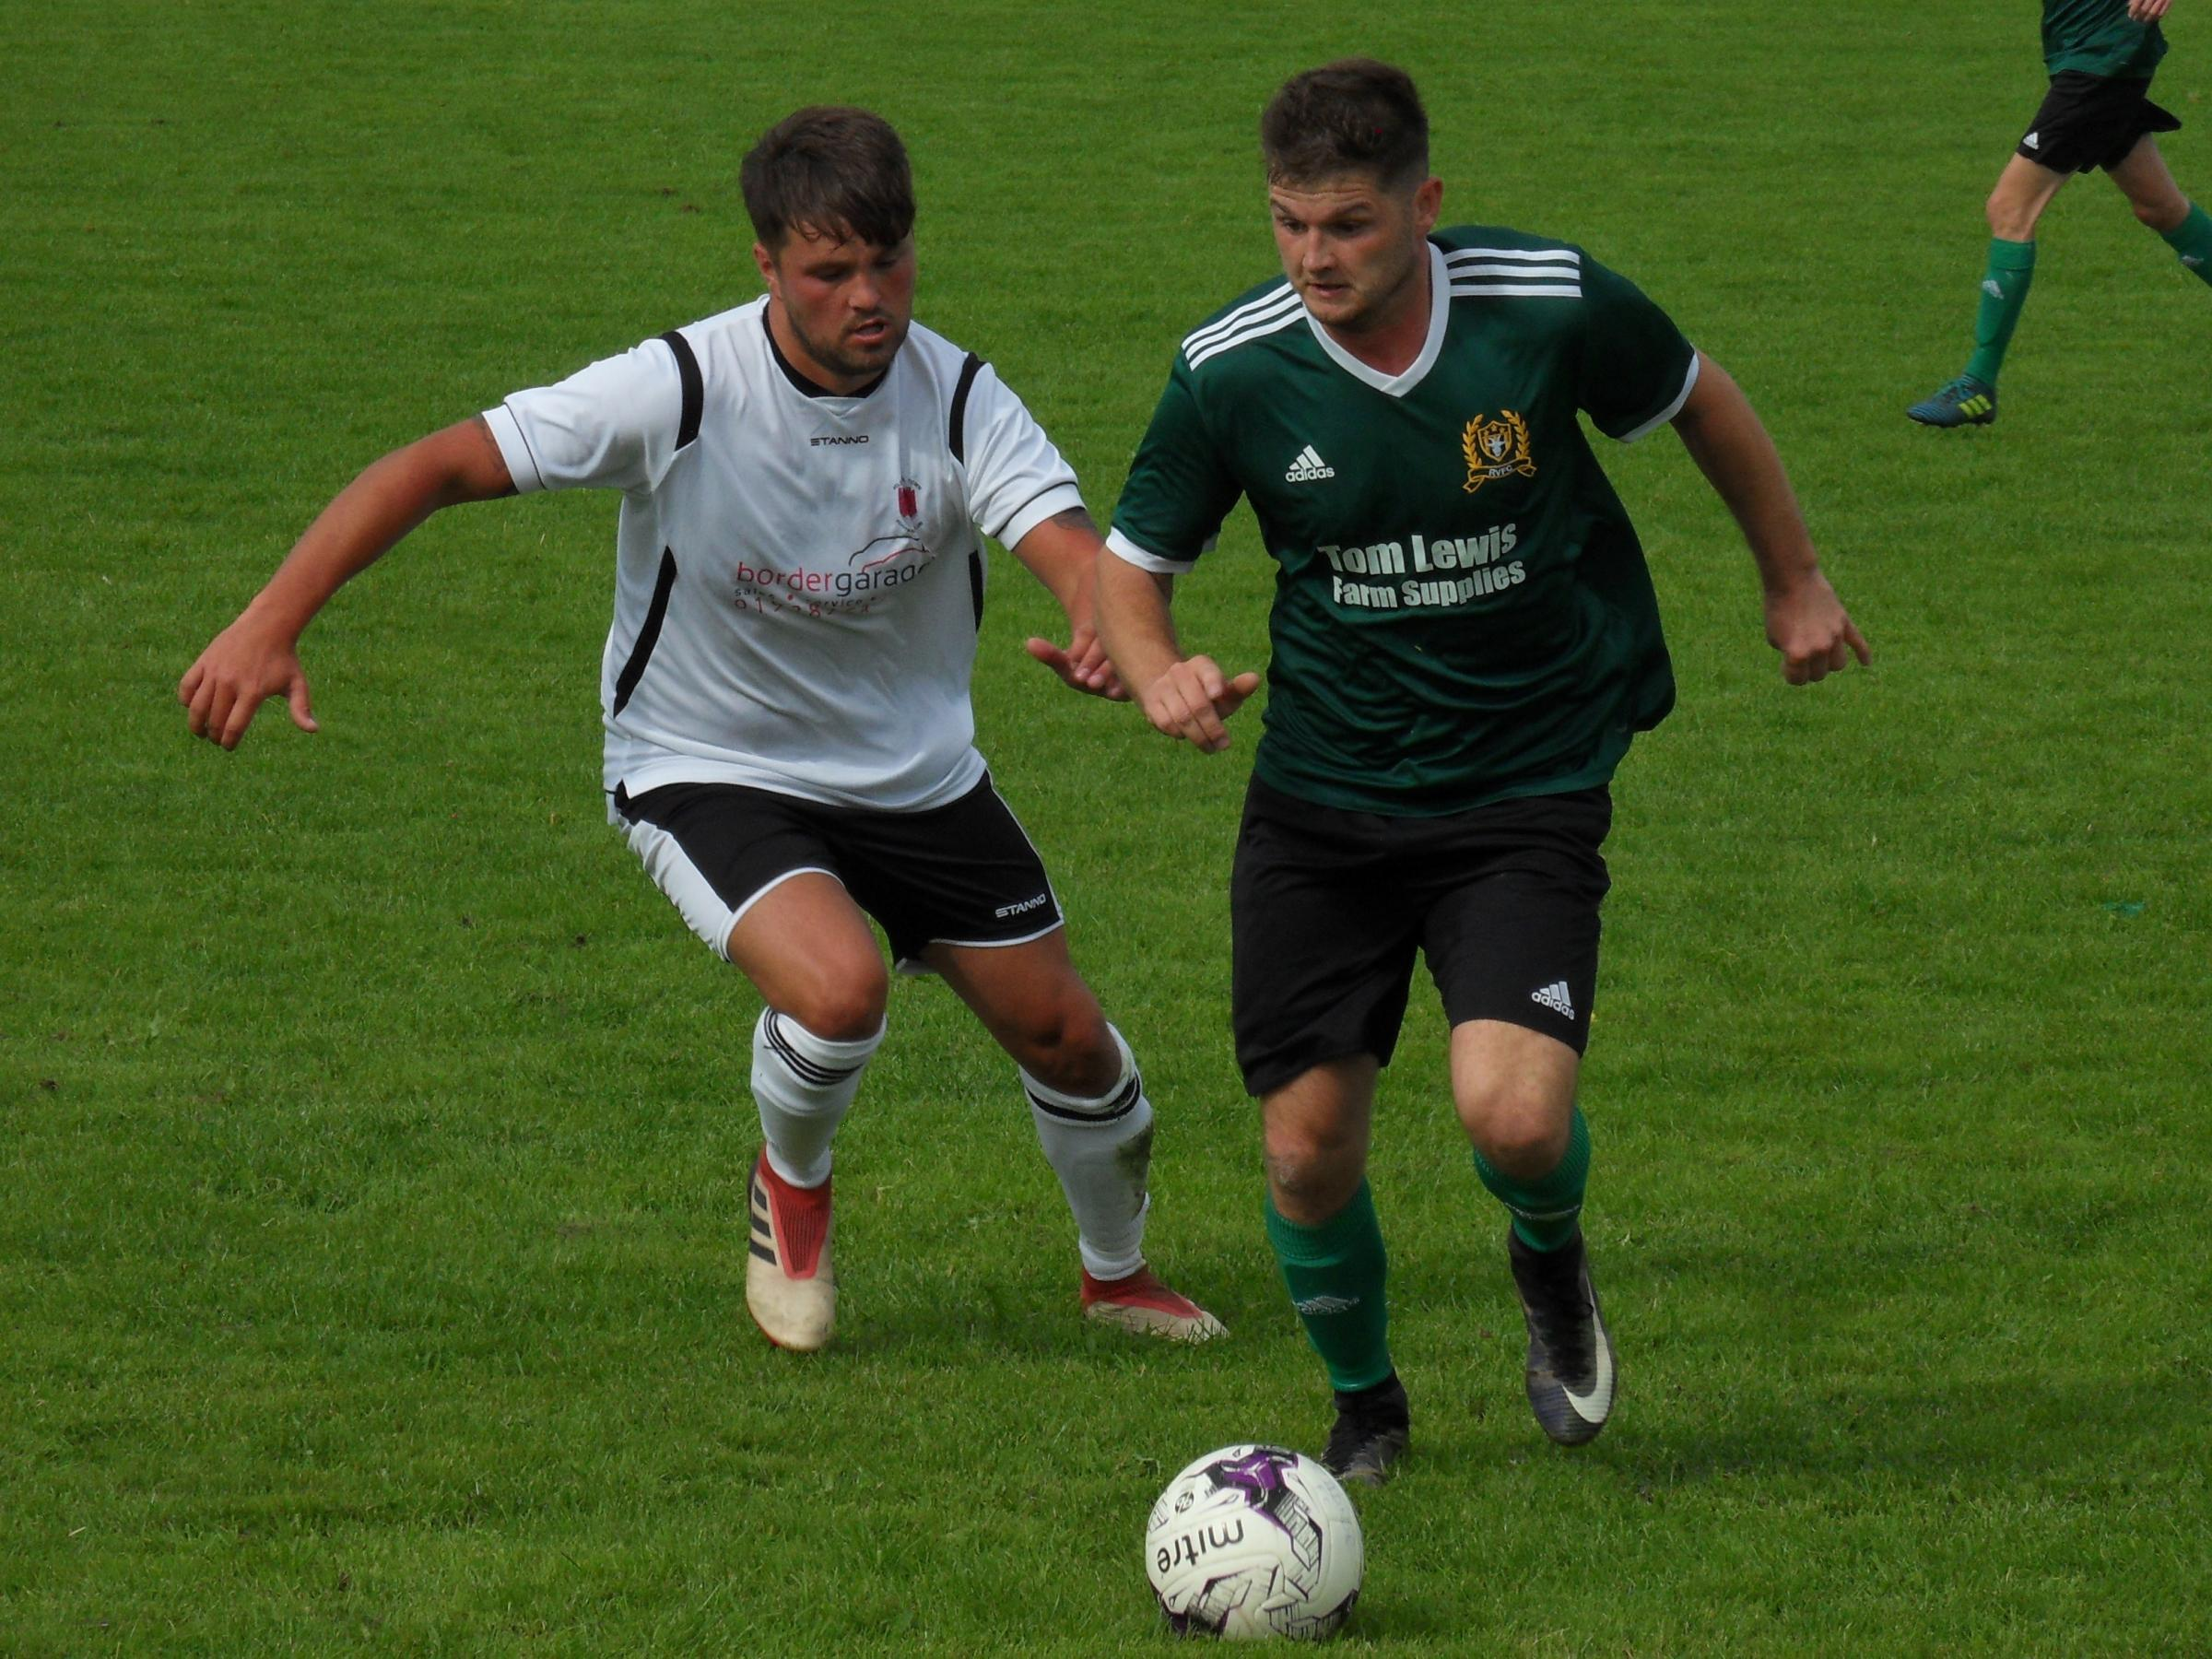 Action from Radnor Valley's win over Welshpool. Picture by Stuart Townsend.